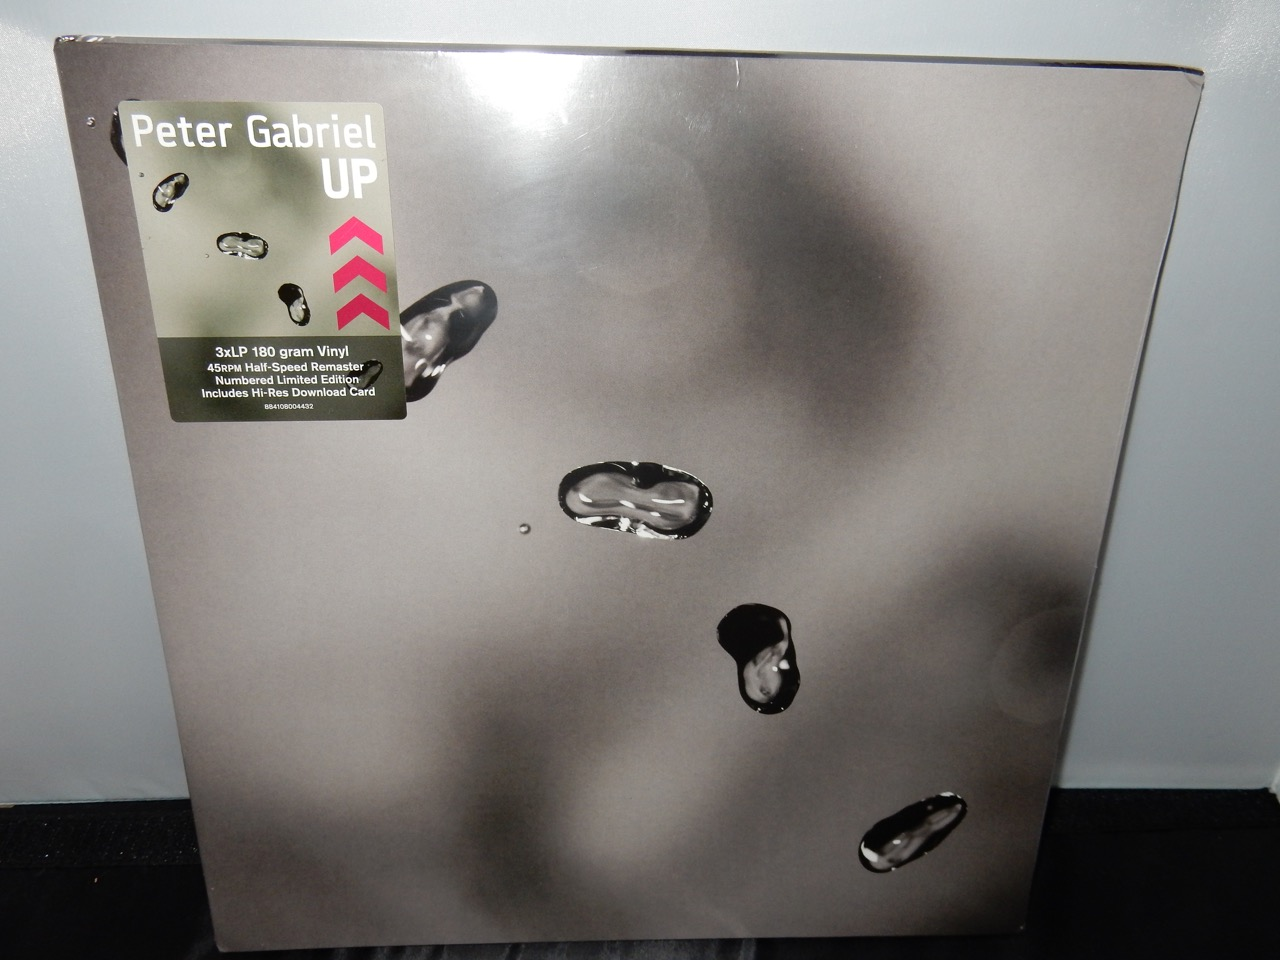 "Peter Gabriel ""Up"" 3XLP Vinyl Limited Edition Numbered Gatefold"